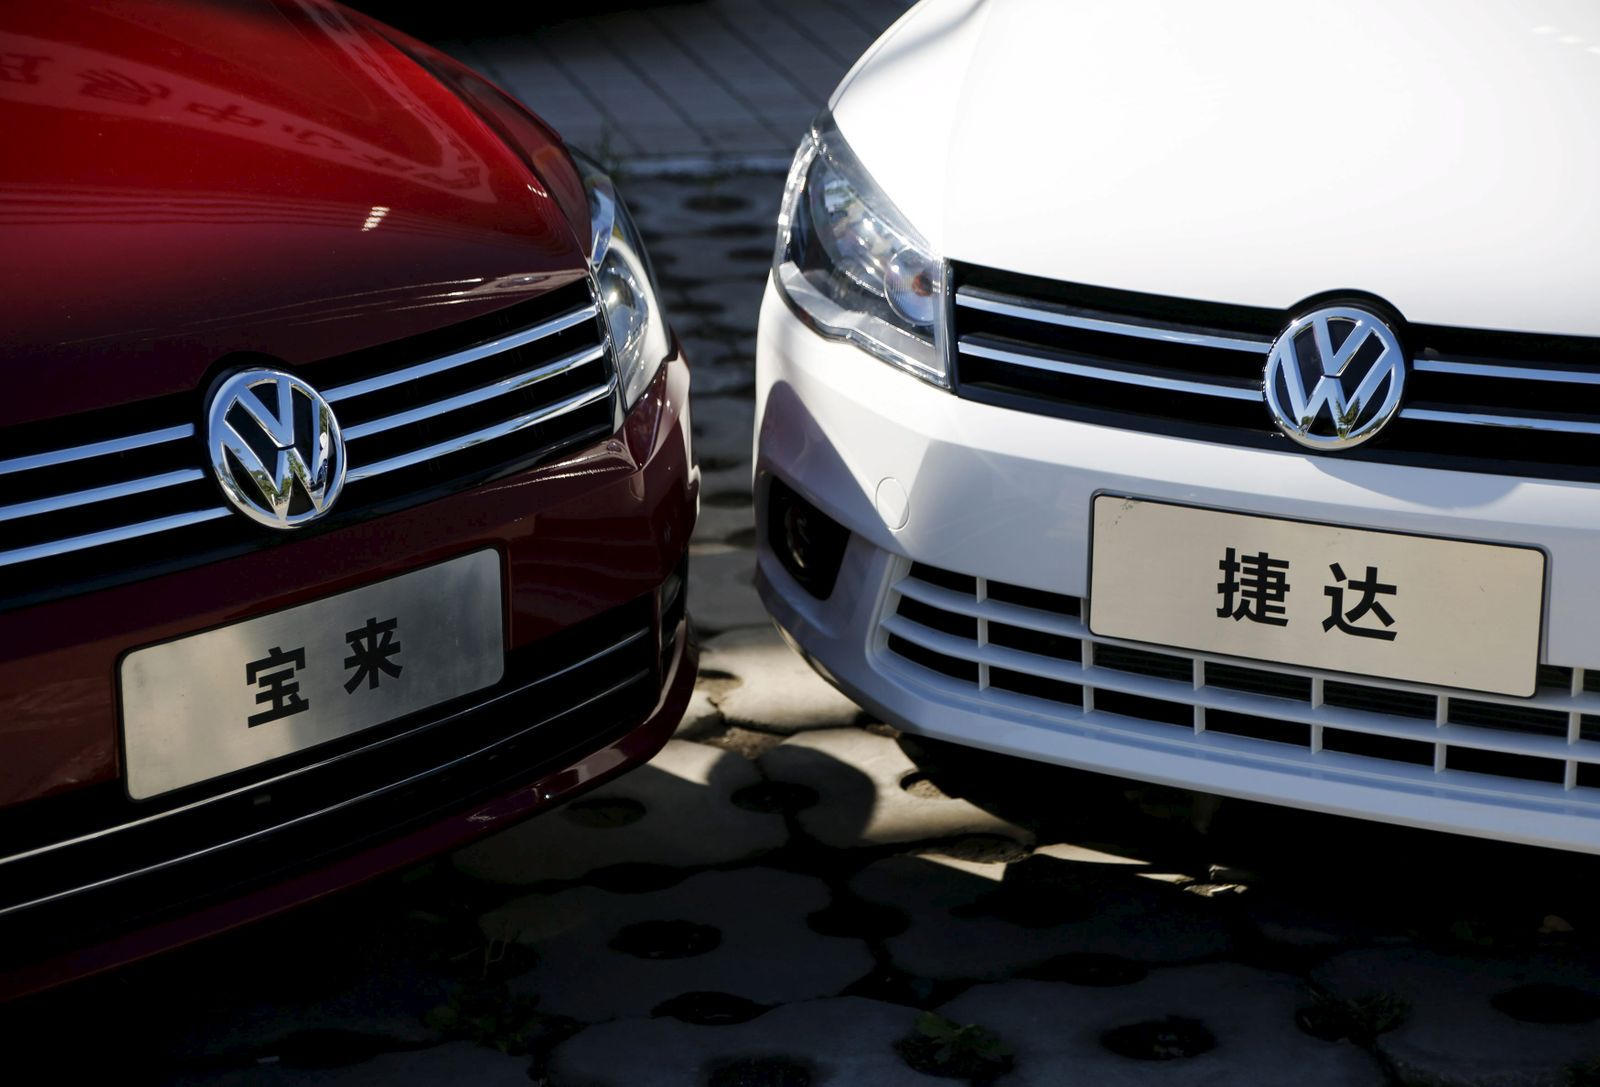 Volkswagen VW China